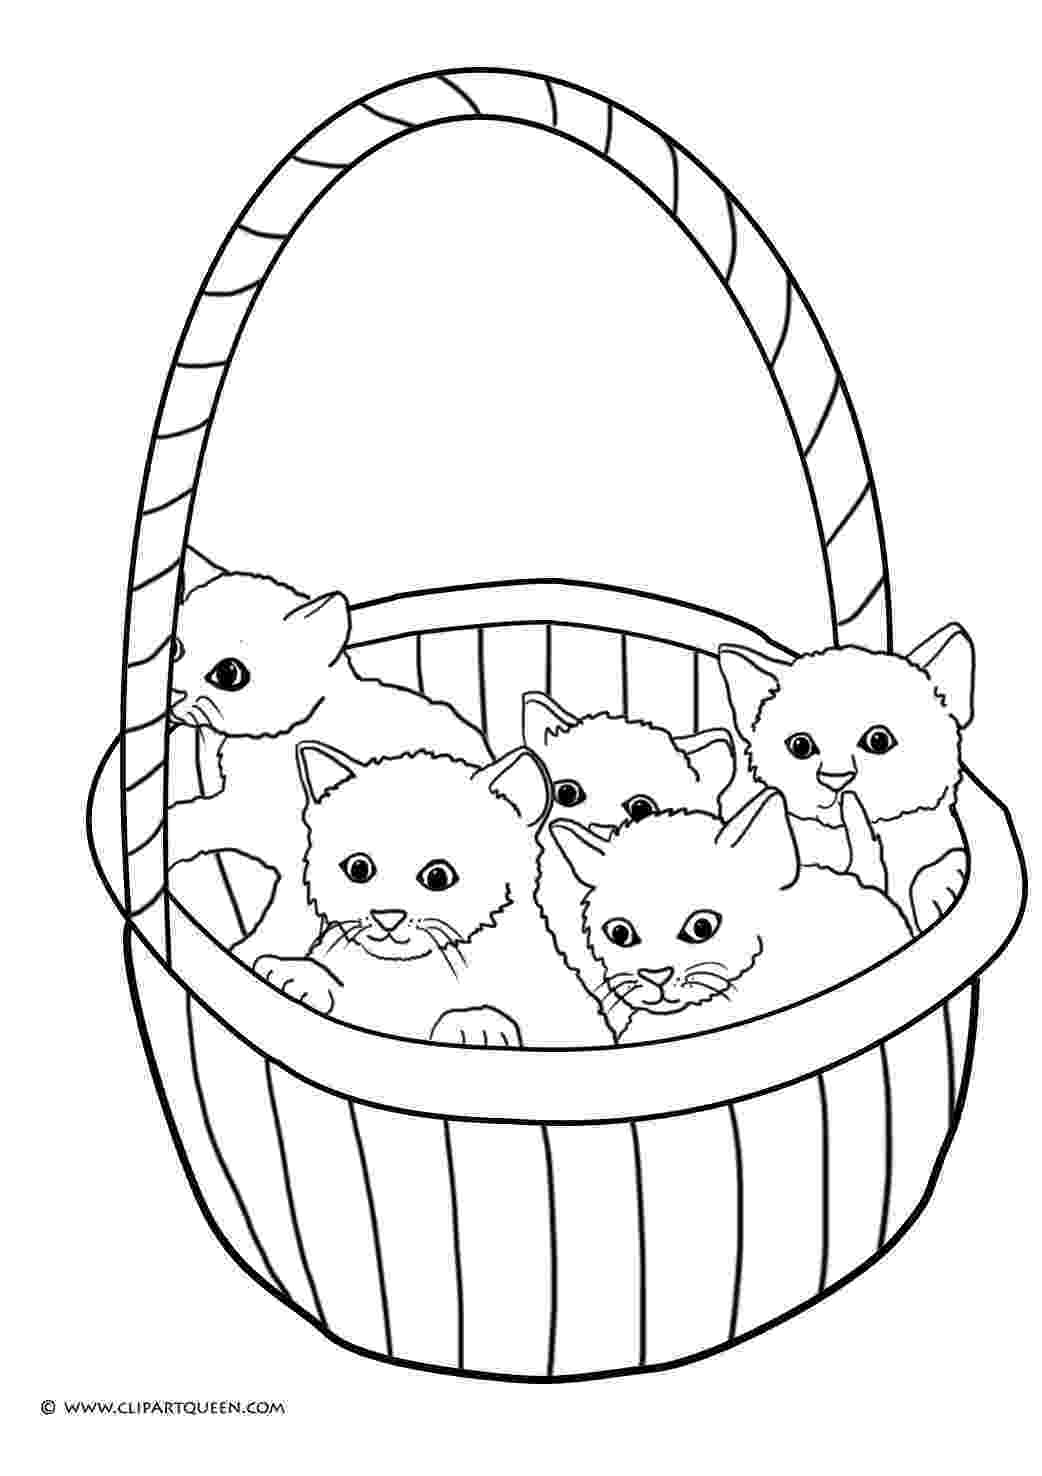 coloring pages of kittens to print kitten coloring pages getcoloringpagescom of print pages to kittens coloring